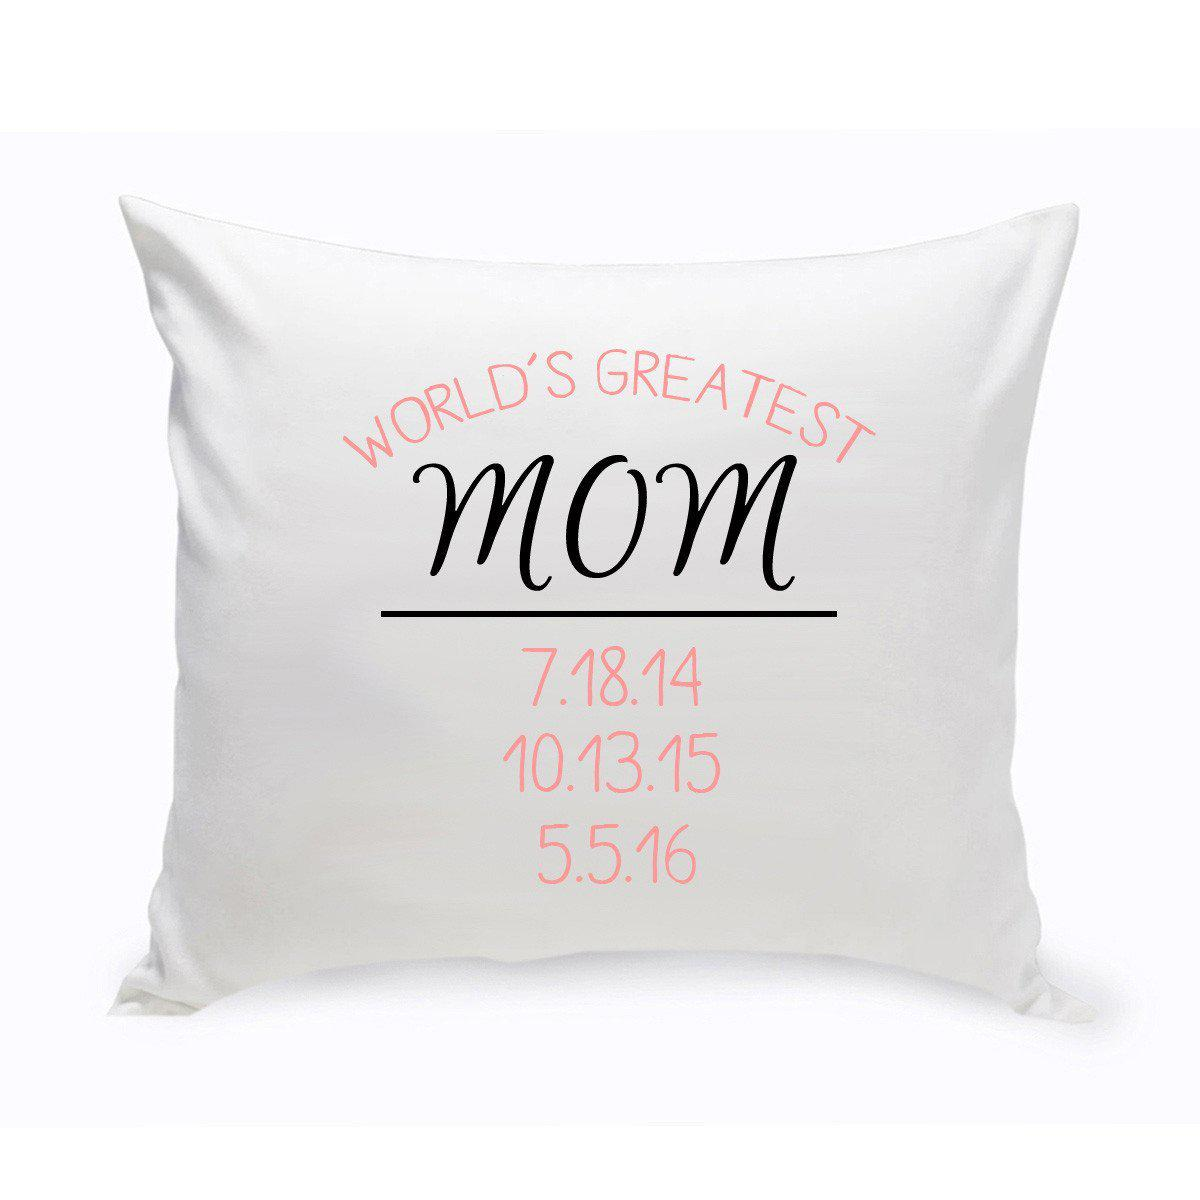 Worlds-Greatest-Mom-Throw-Pillow